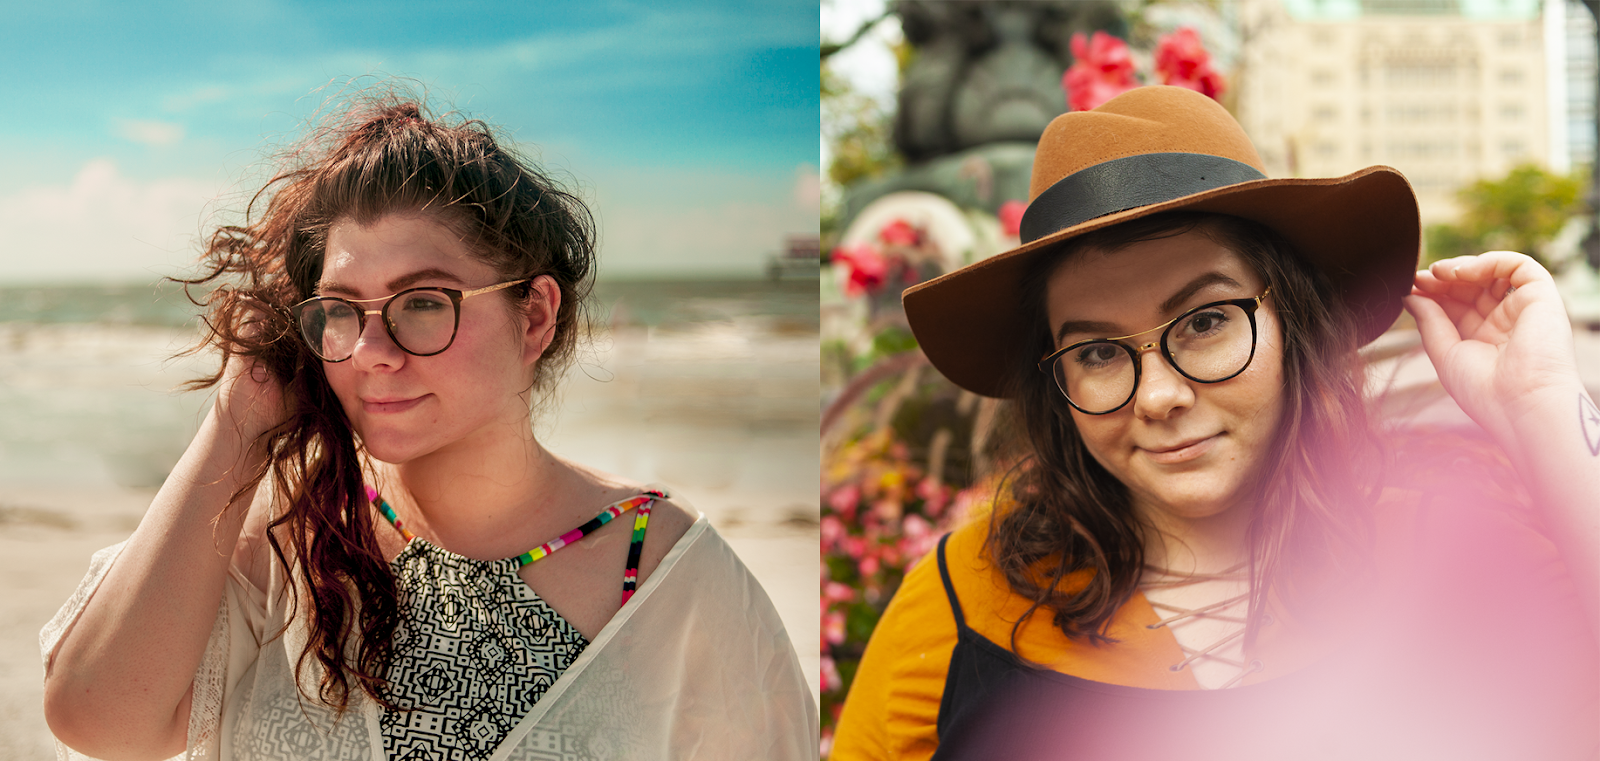 A collage of two photos side by side of Katie, a white brunette woman with round glasses. The left photo is Katie with her long wavy hair in a pony tail on top of her head looking off to the right of frame, wearing a colorful swimsuit top in front of a beach. The left photo is Katie wearing a brown panama hat and an ochre top with flowers around her in a city setting.